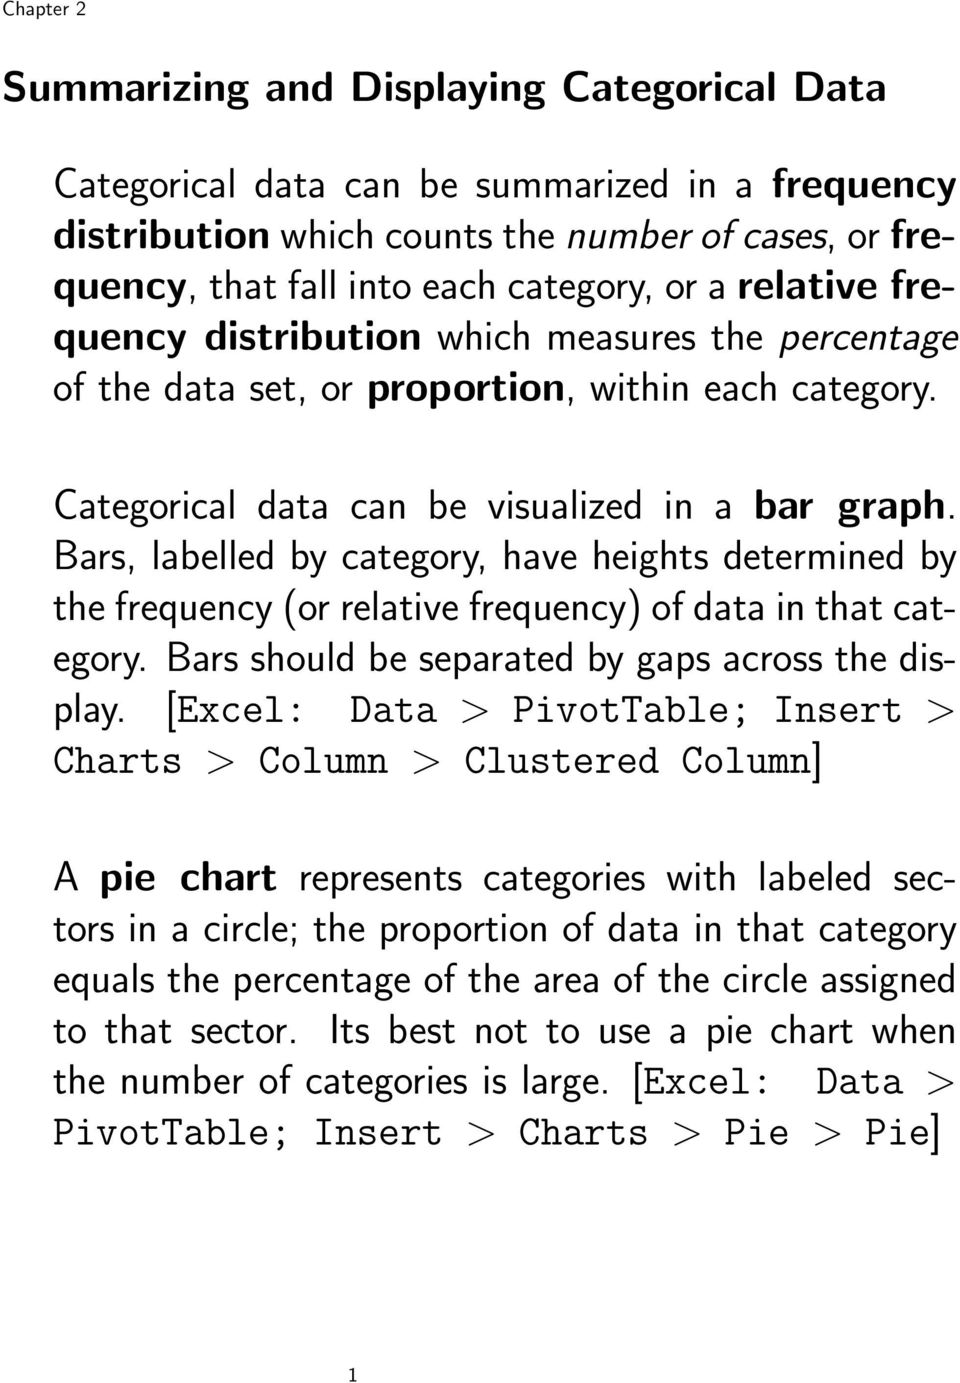 Bars, labelled by category, have heights determined by the frequency (or relative frequency) of data in that category. Bars should be separated by gaps across the display.